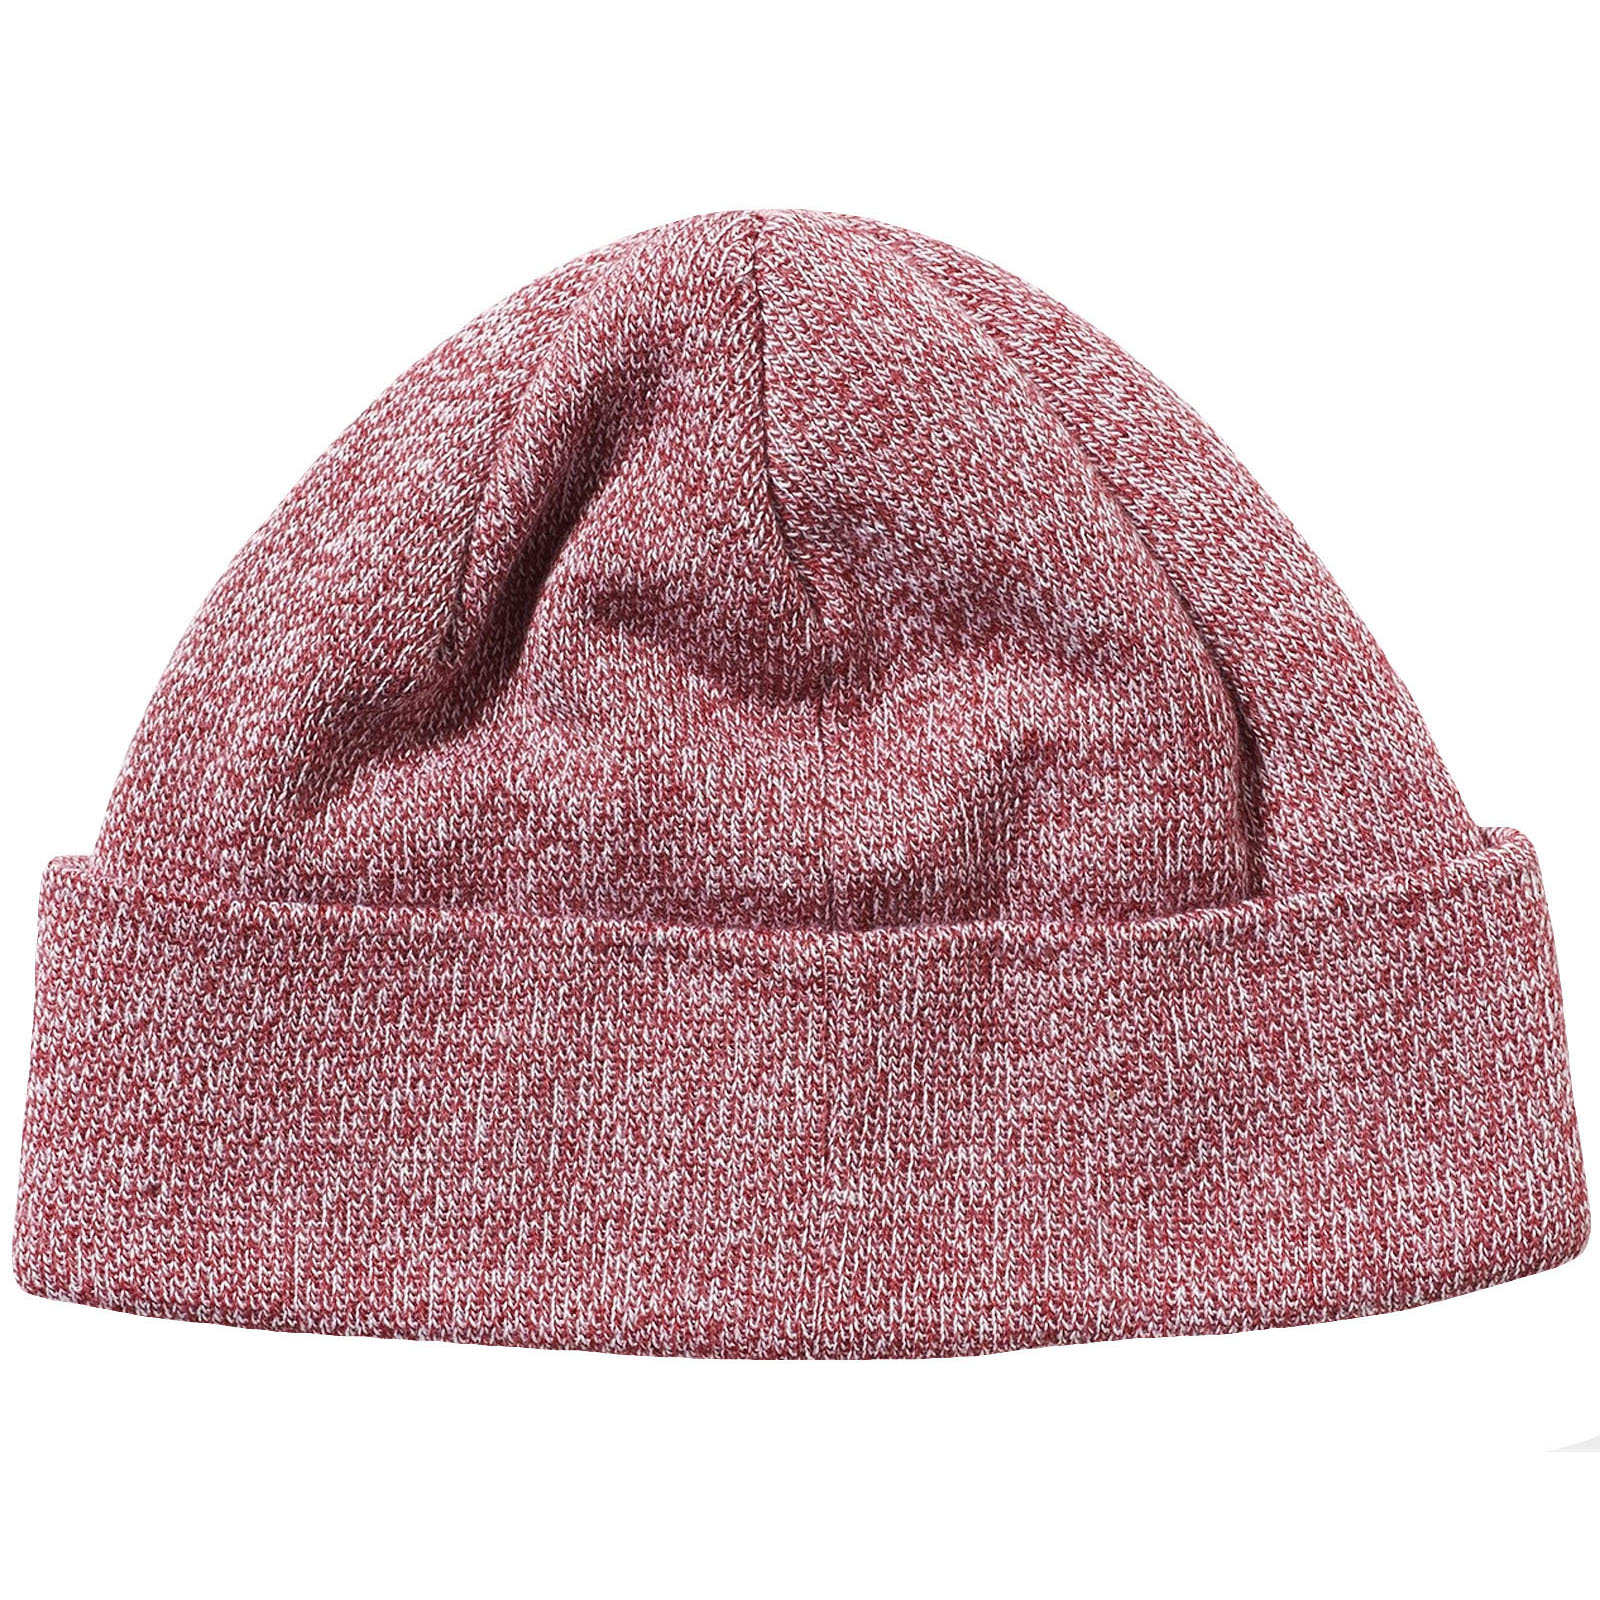 50217e7c966 adidas Originals Warm Winter Rib Logo Beanie Hat - Burgundy